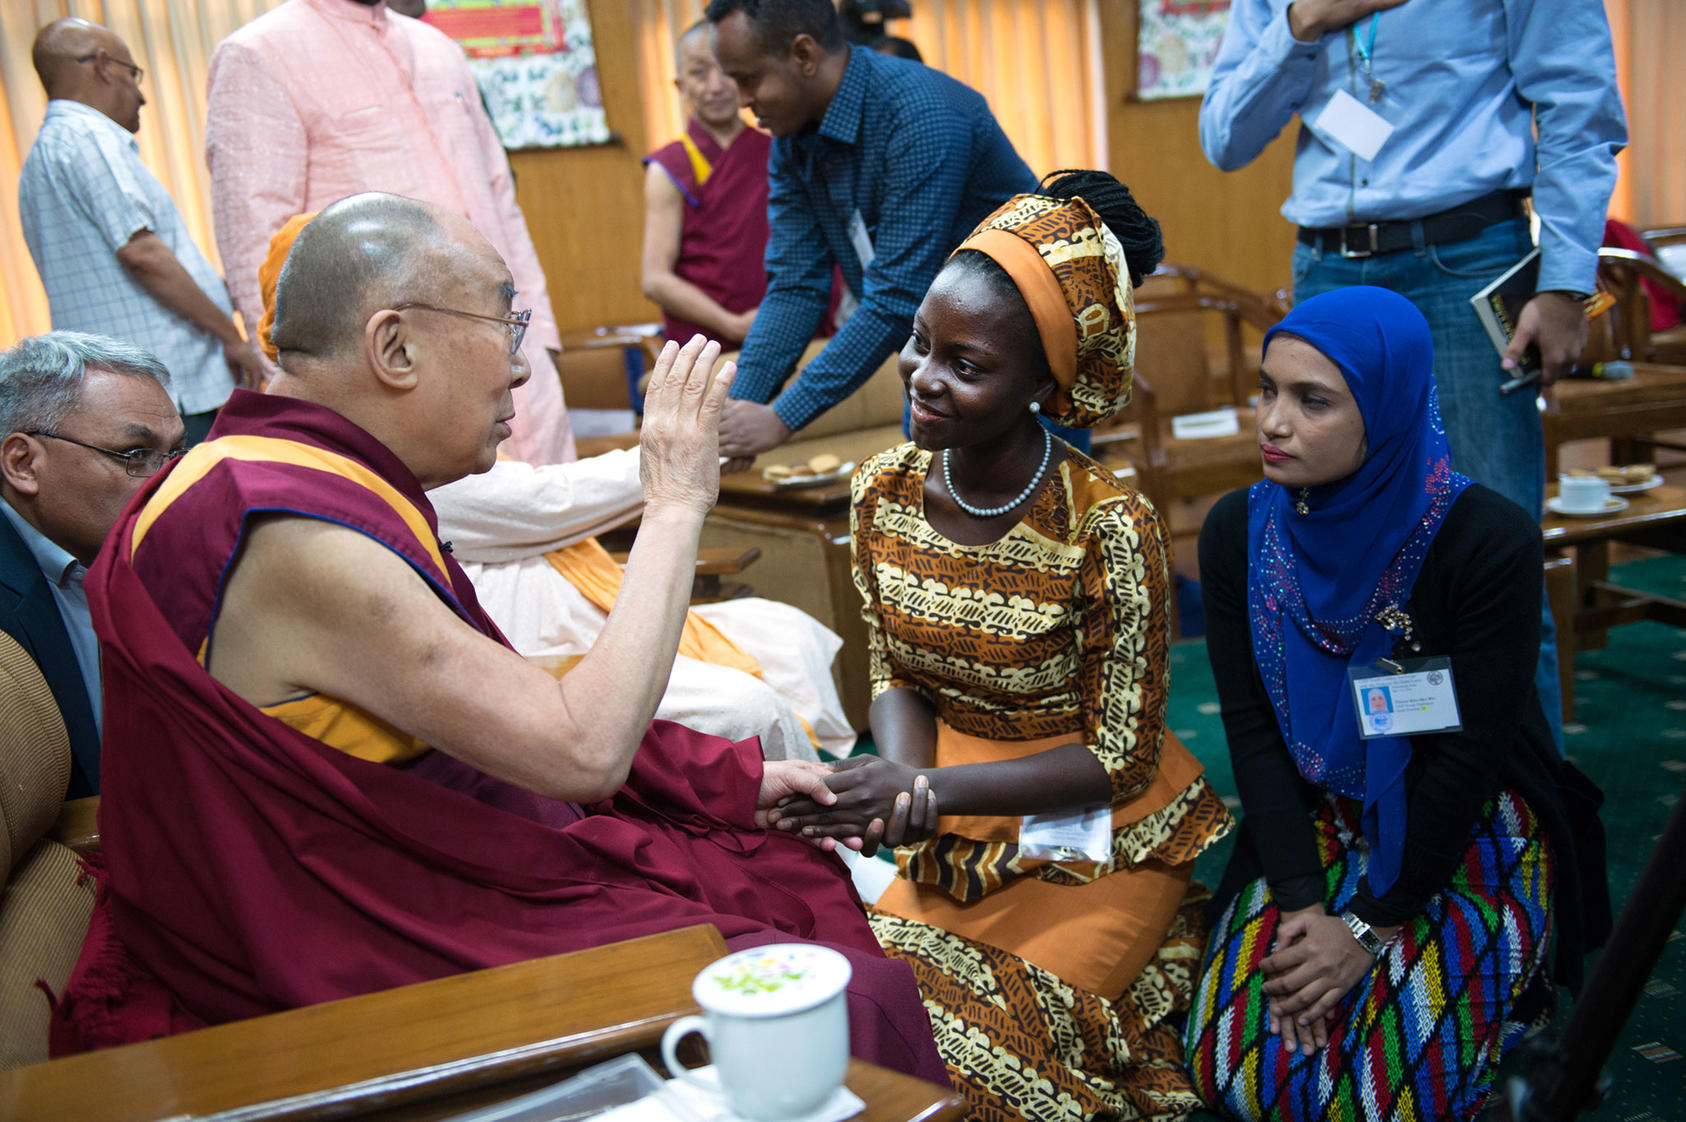 USIP Youth Leaders' Exchange with His Holiness the Dalai Lama 2018 (Fully-funded to Dharamsala)